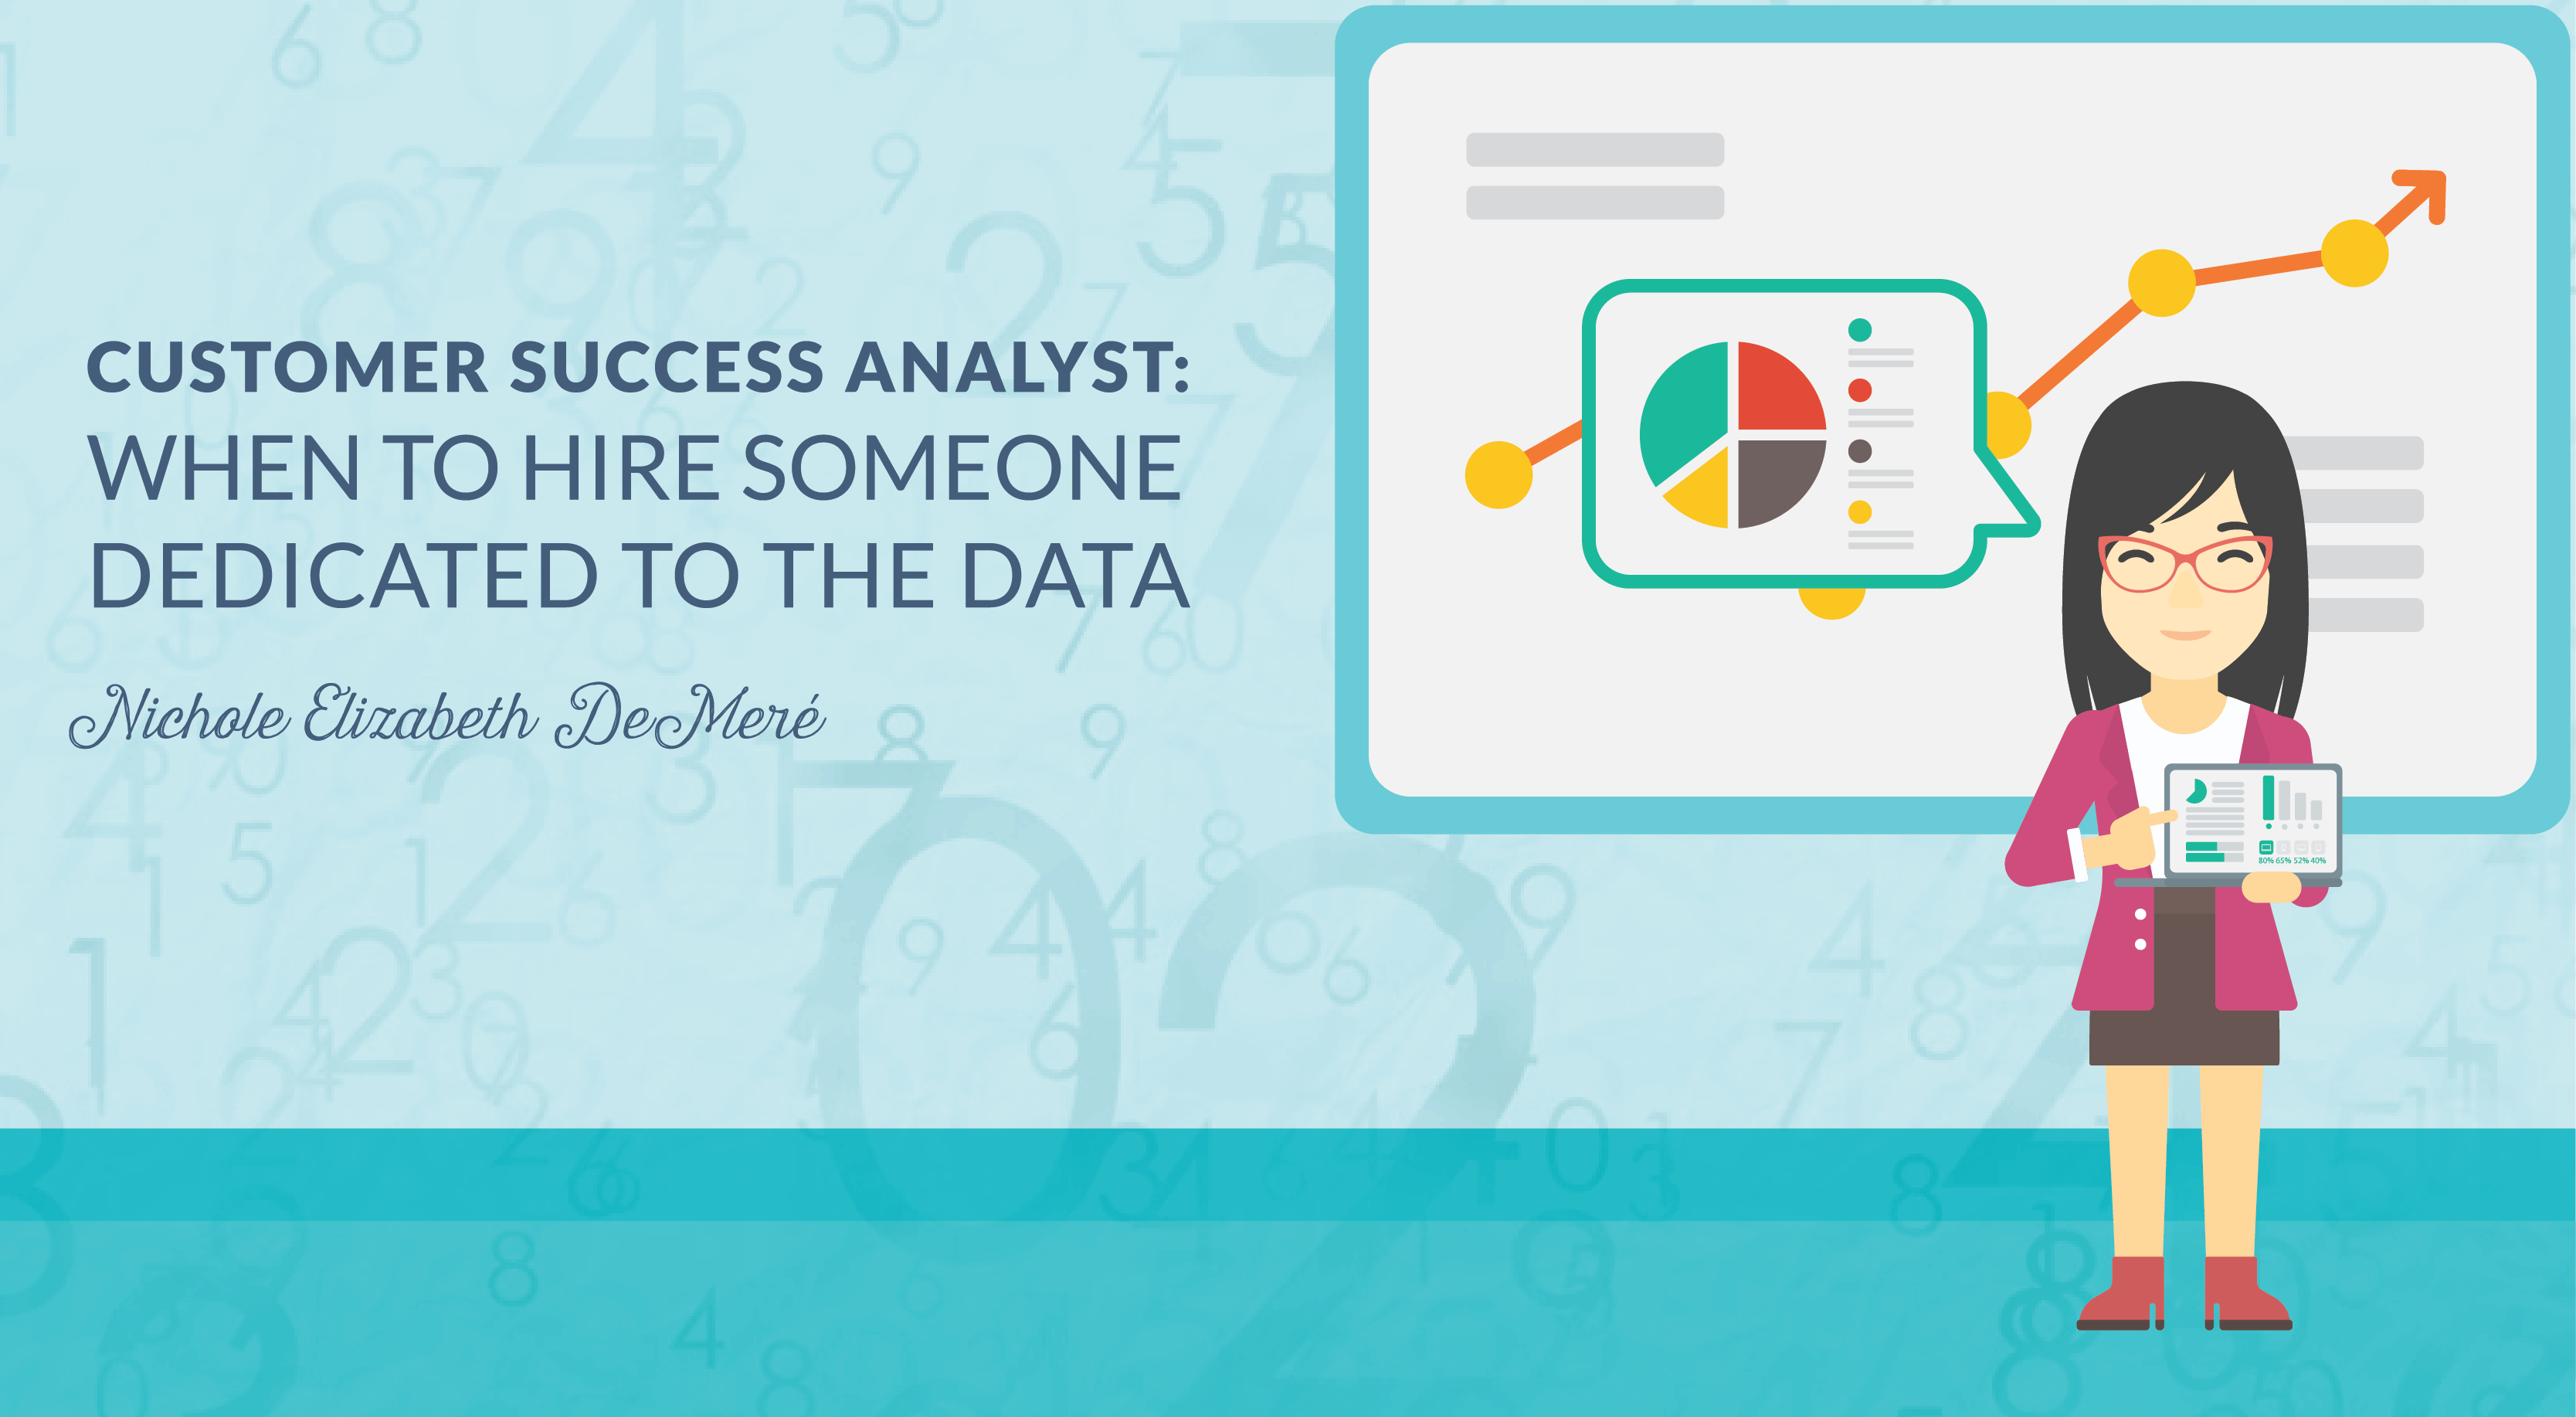 Customer Success Analyst: When to Hire Someone Dedicated to